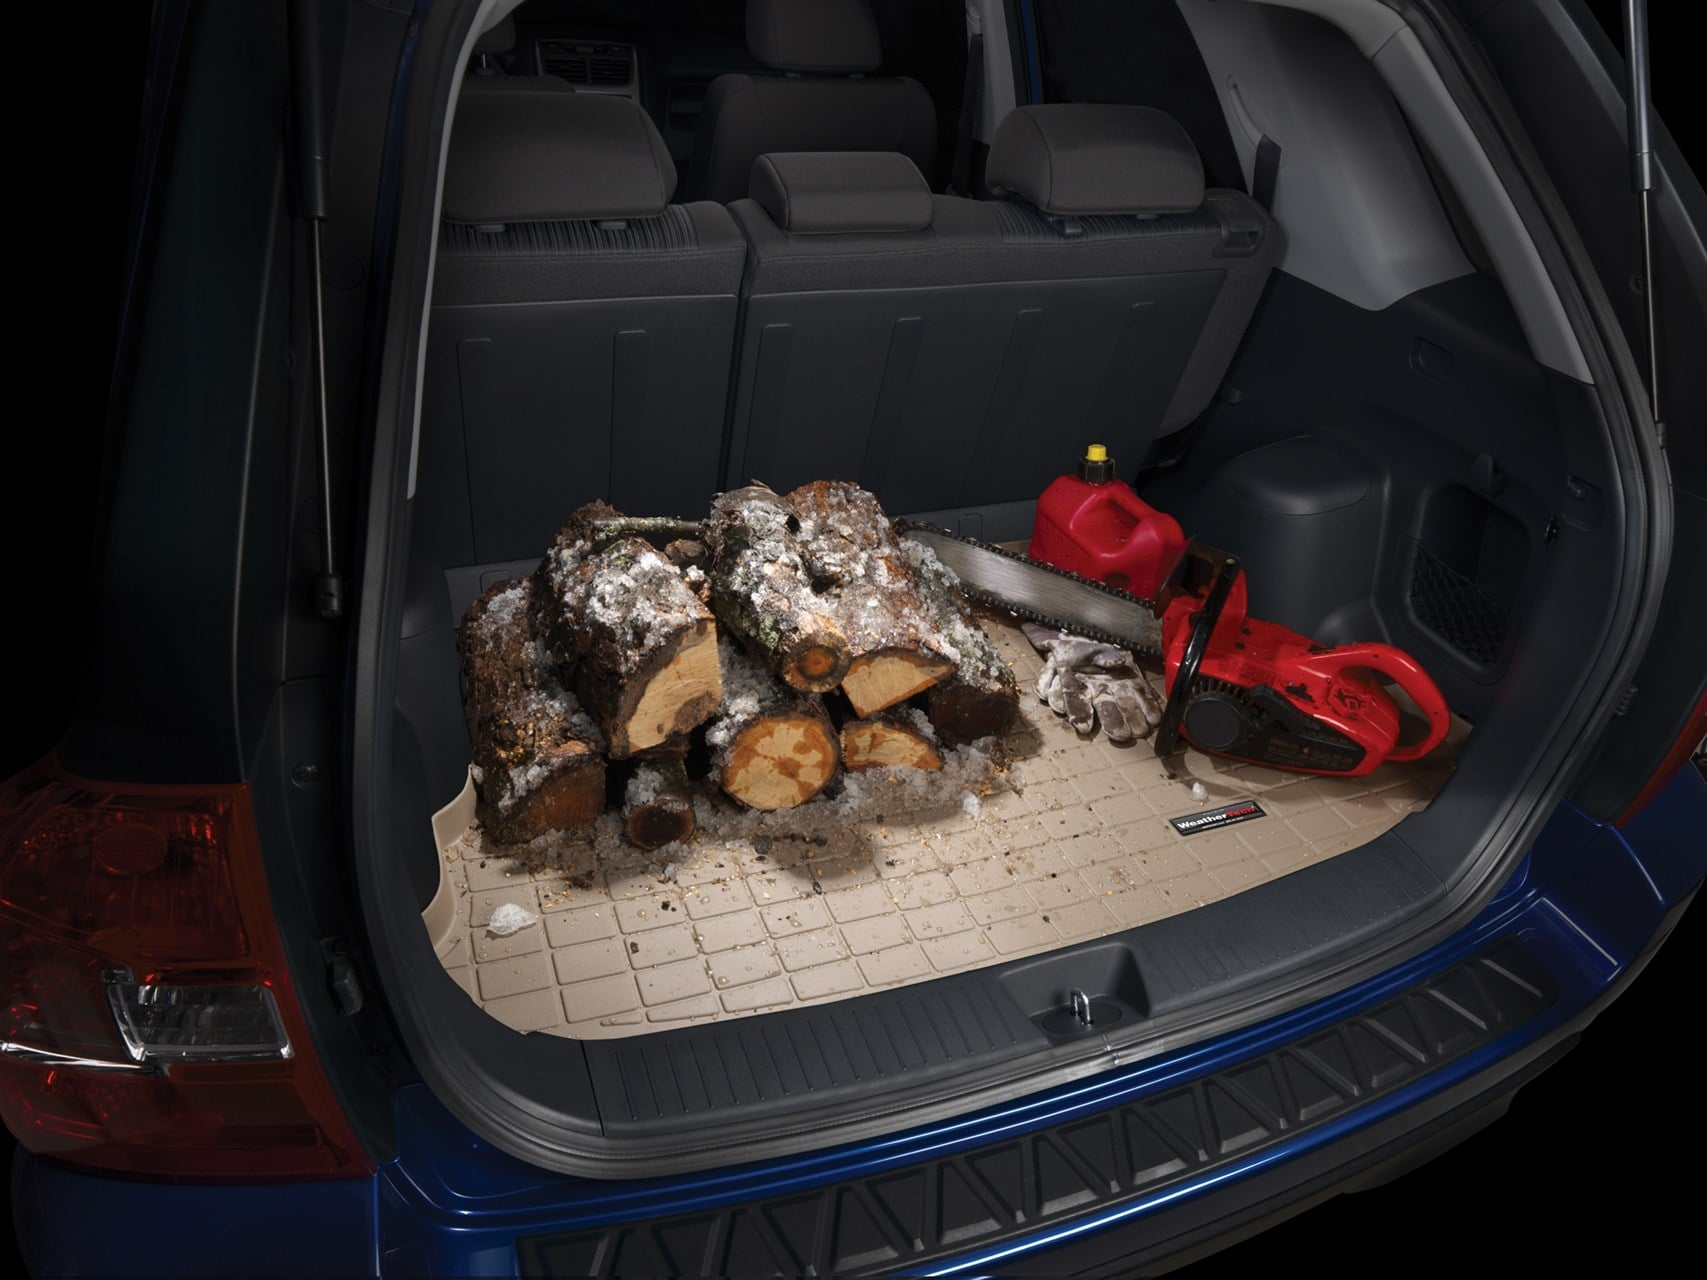 Weathertech mats part source - Weathertech Cargo Liners Meet Fmvss302 Standards Cargo Liners Are Proudly Designed Engineered And Manufactured With American Made Tooling In The Usa